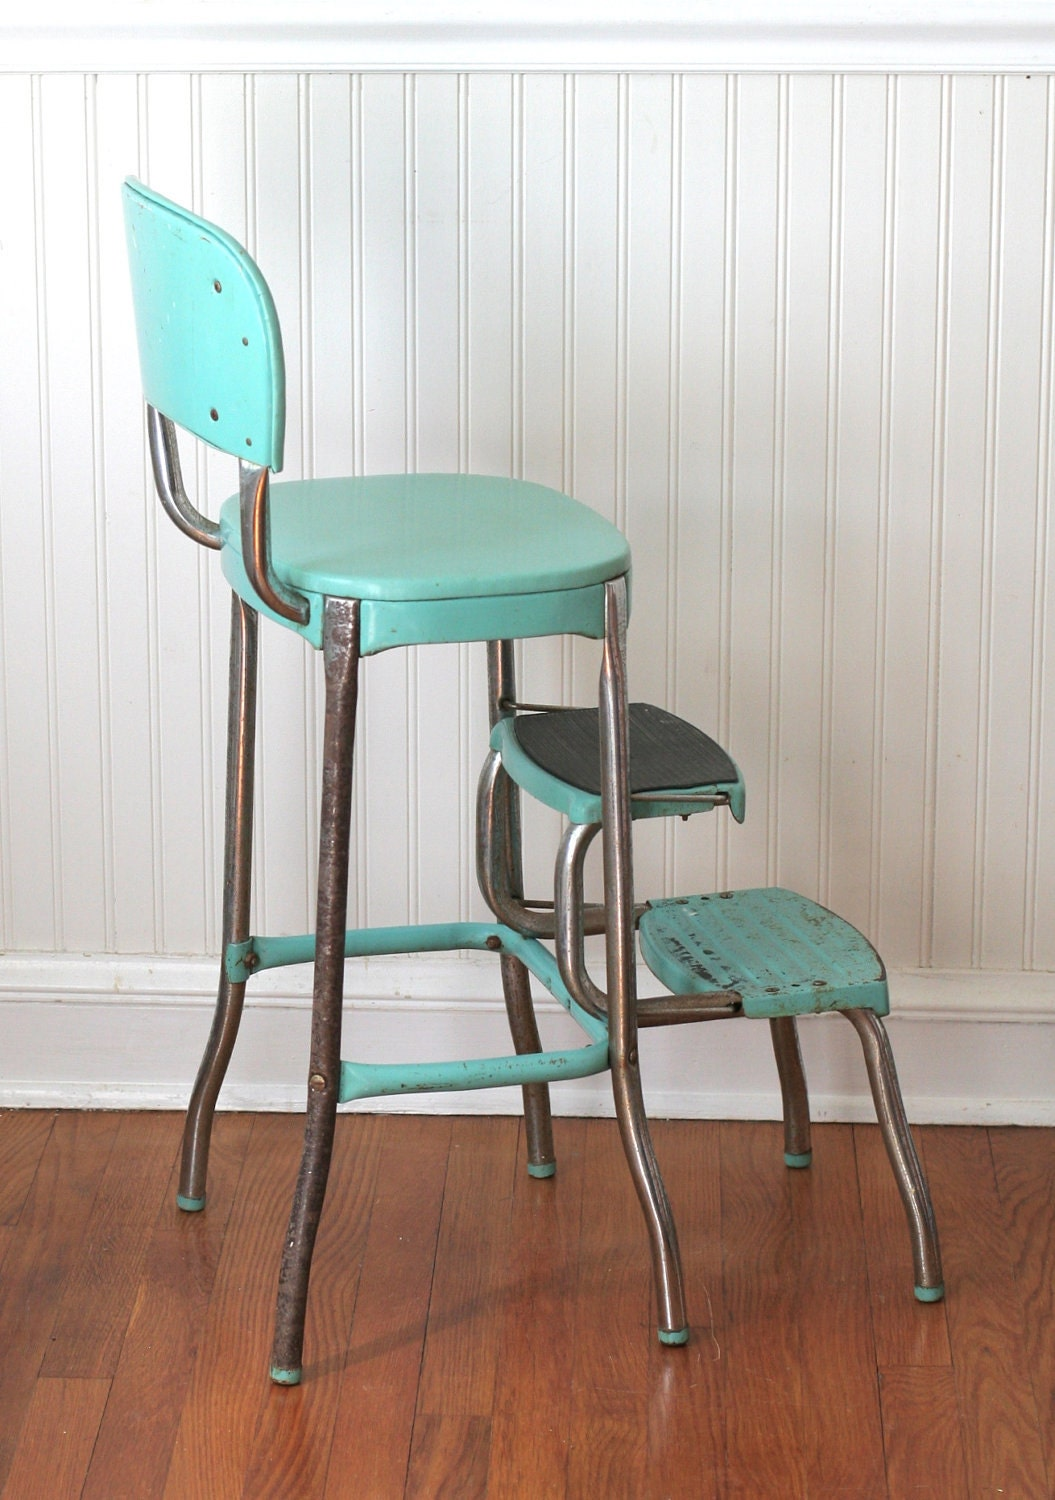 Circa 1950s Cosco Fold Out Step Stool Chair Aqua Turquoise